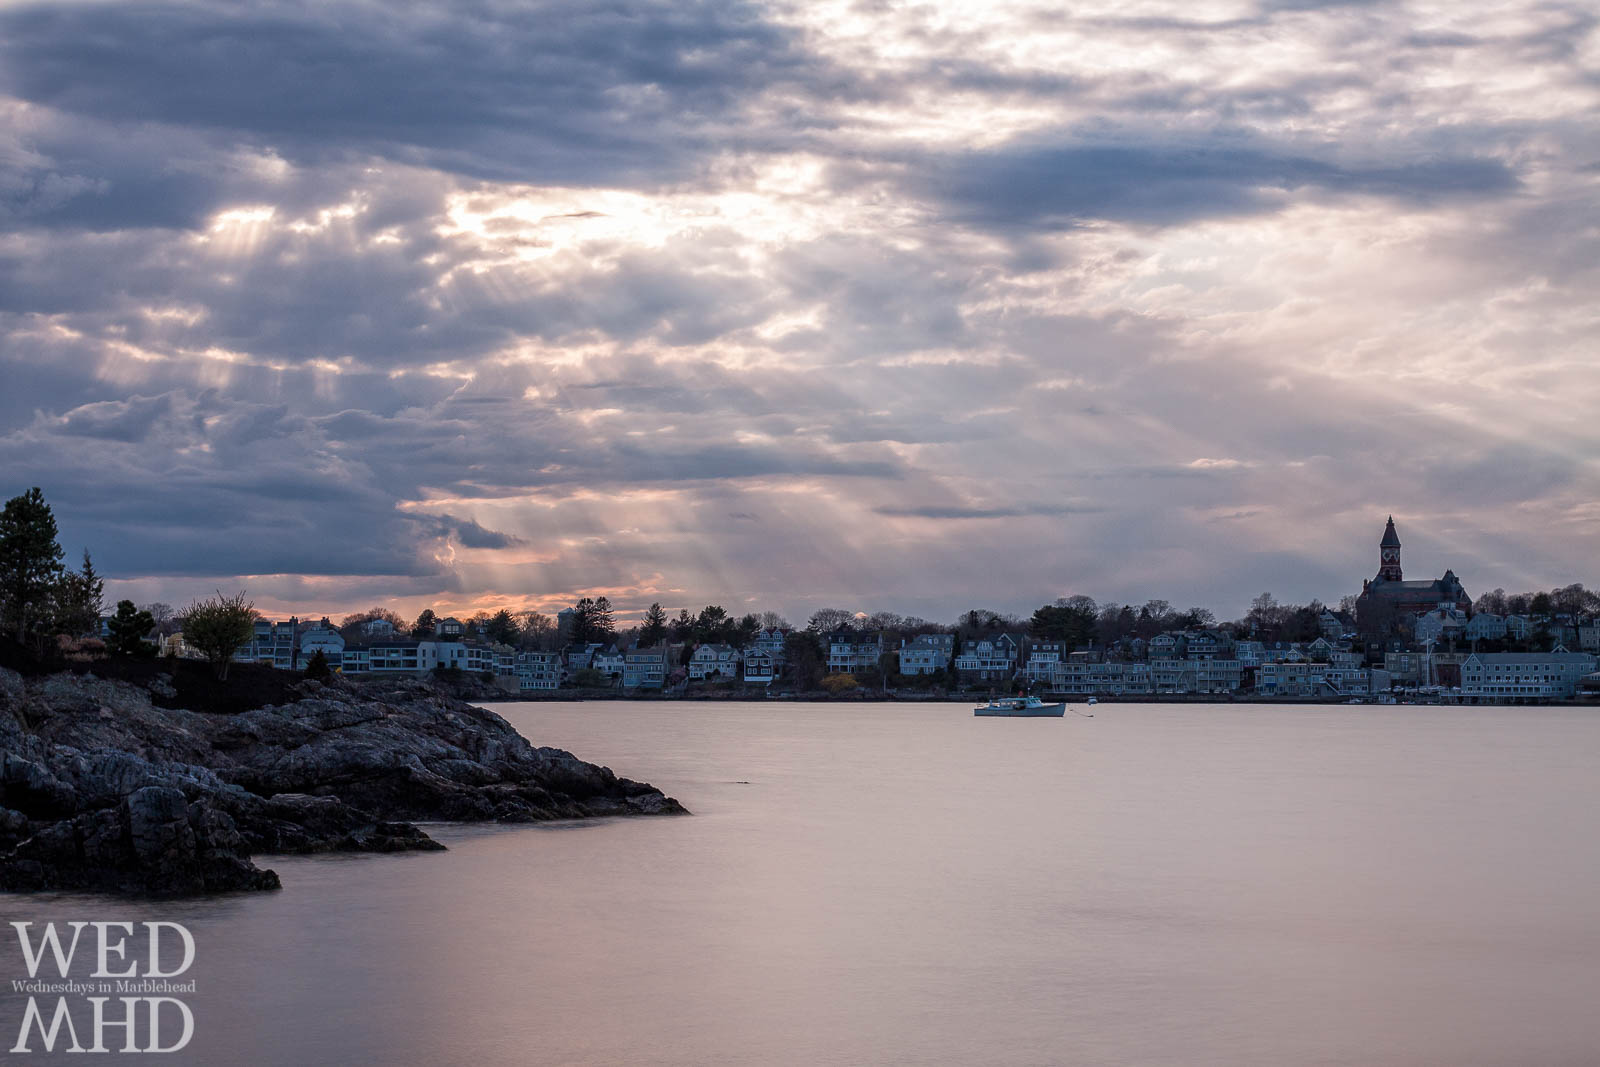 Long Exposure Sun Rays over Marblehead Harbor